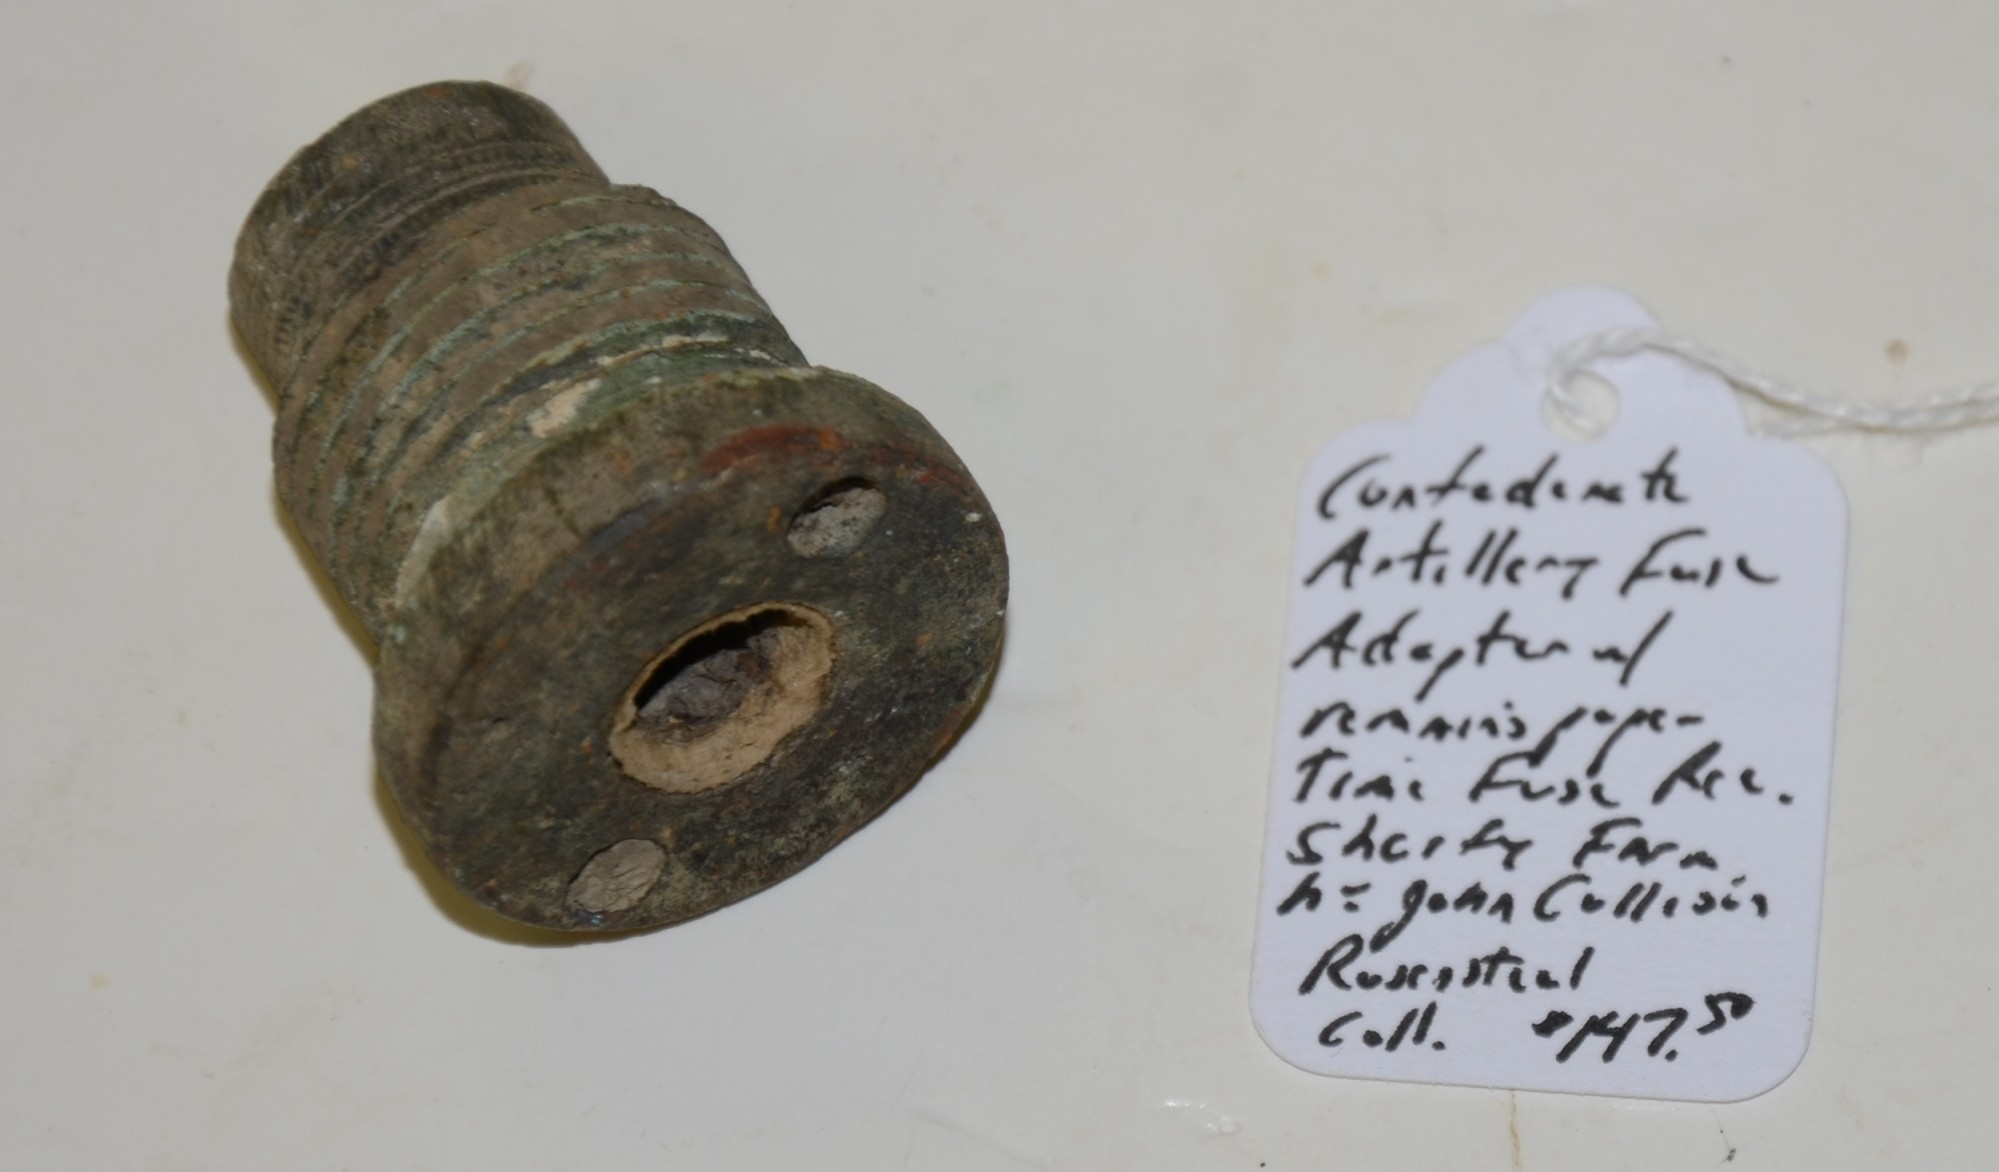 CONFEDERATE ARTILLERY FUSE ADAPTER WITH REMAINS OF PAPER TIME FUSE RECOVERED ON THE SHERFY FARM, GETTYSBURG